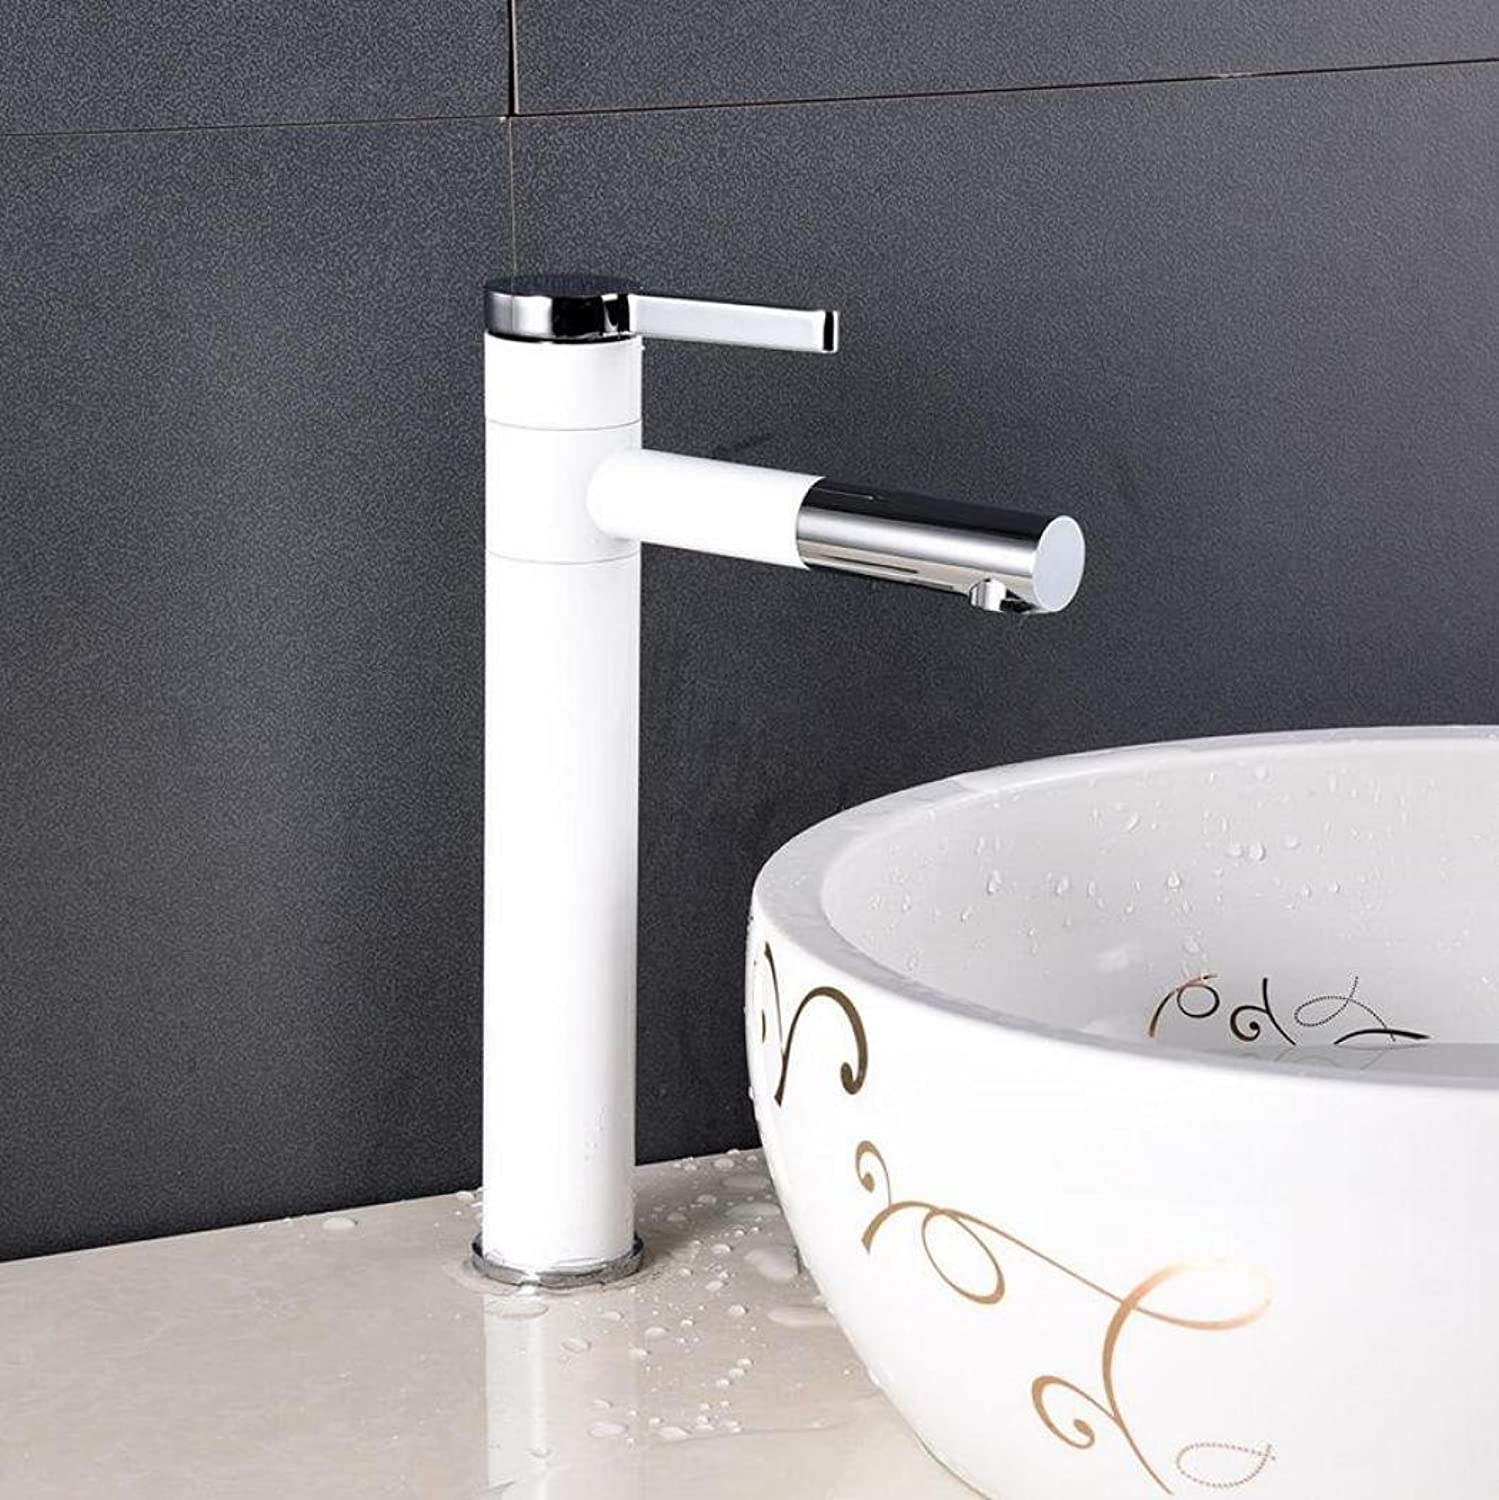 1411 Washbasin Faucet Bathroom Basin Washbasin Swivel Faucet Lavatory Mixer Tap Paint Finished XQQQ